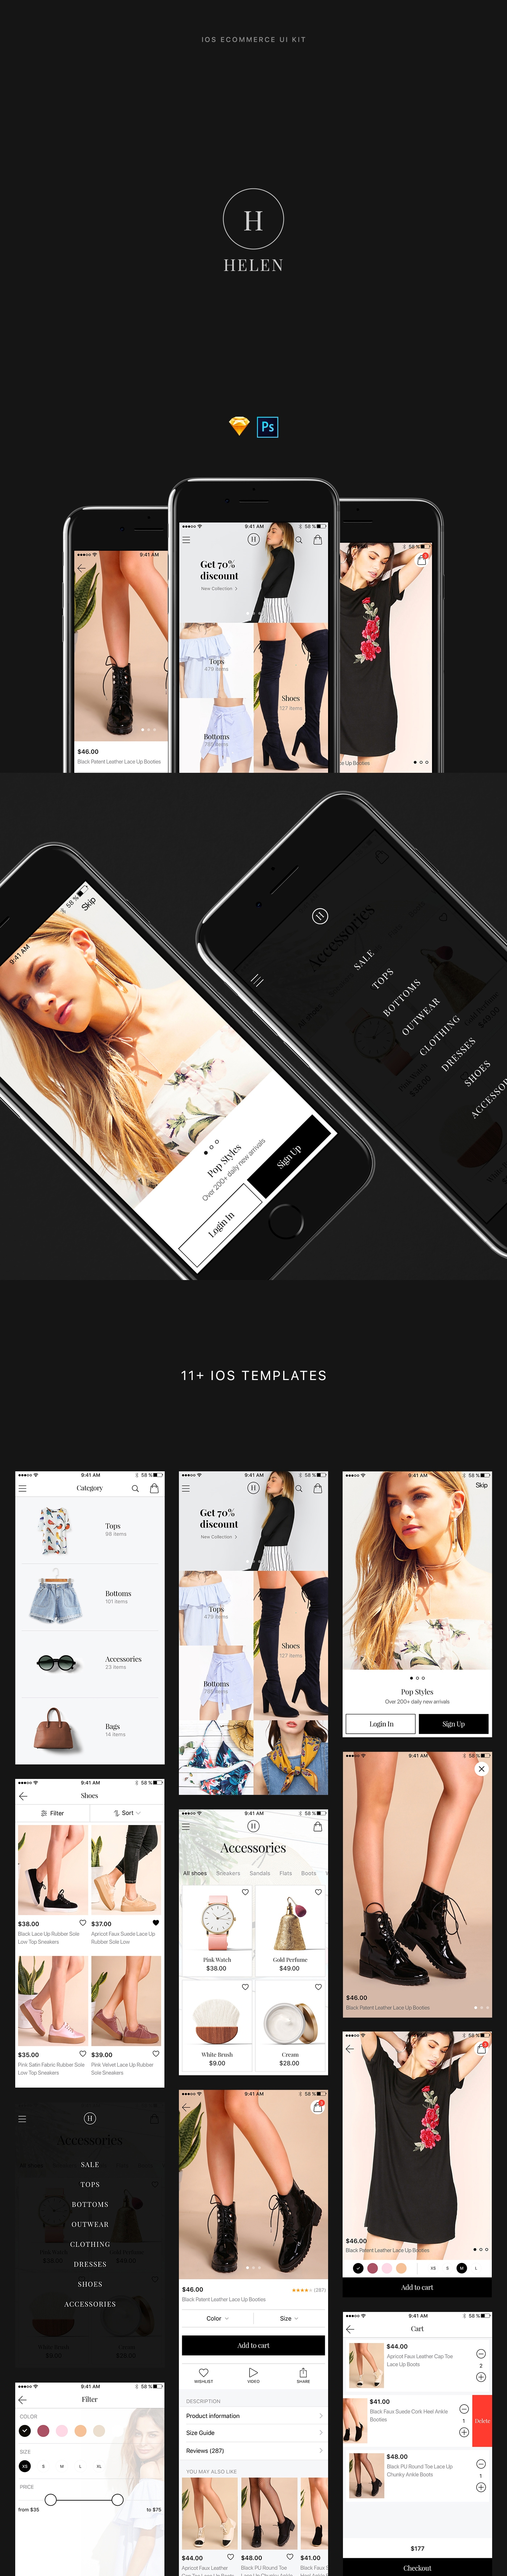 Helen Free iOS Ecommerce Ui Kit - Helen is a wonderful, professionally designed iOS ecommerce UI Kit for Sketch and Photoshop. All elements well organized into 11+ high-quality screens.